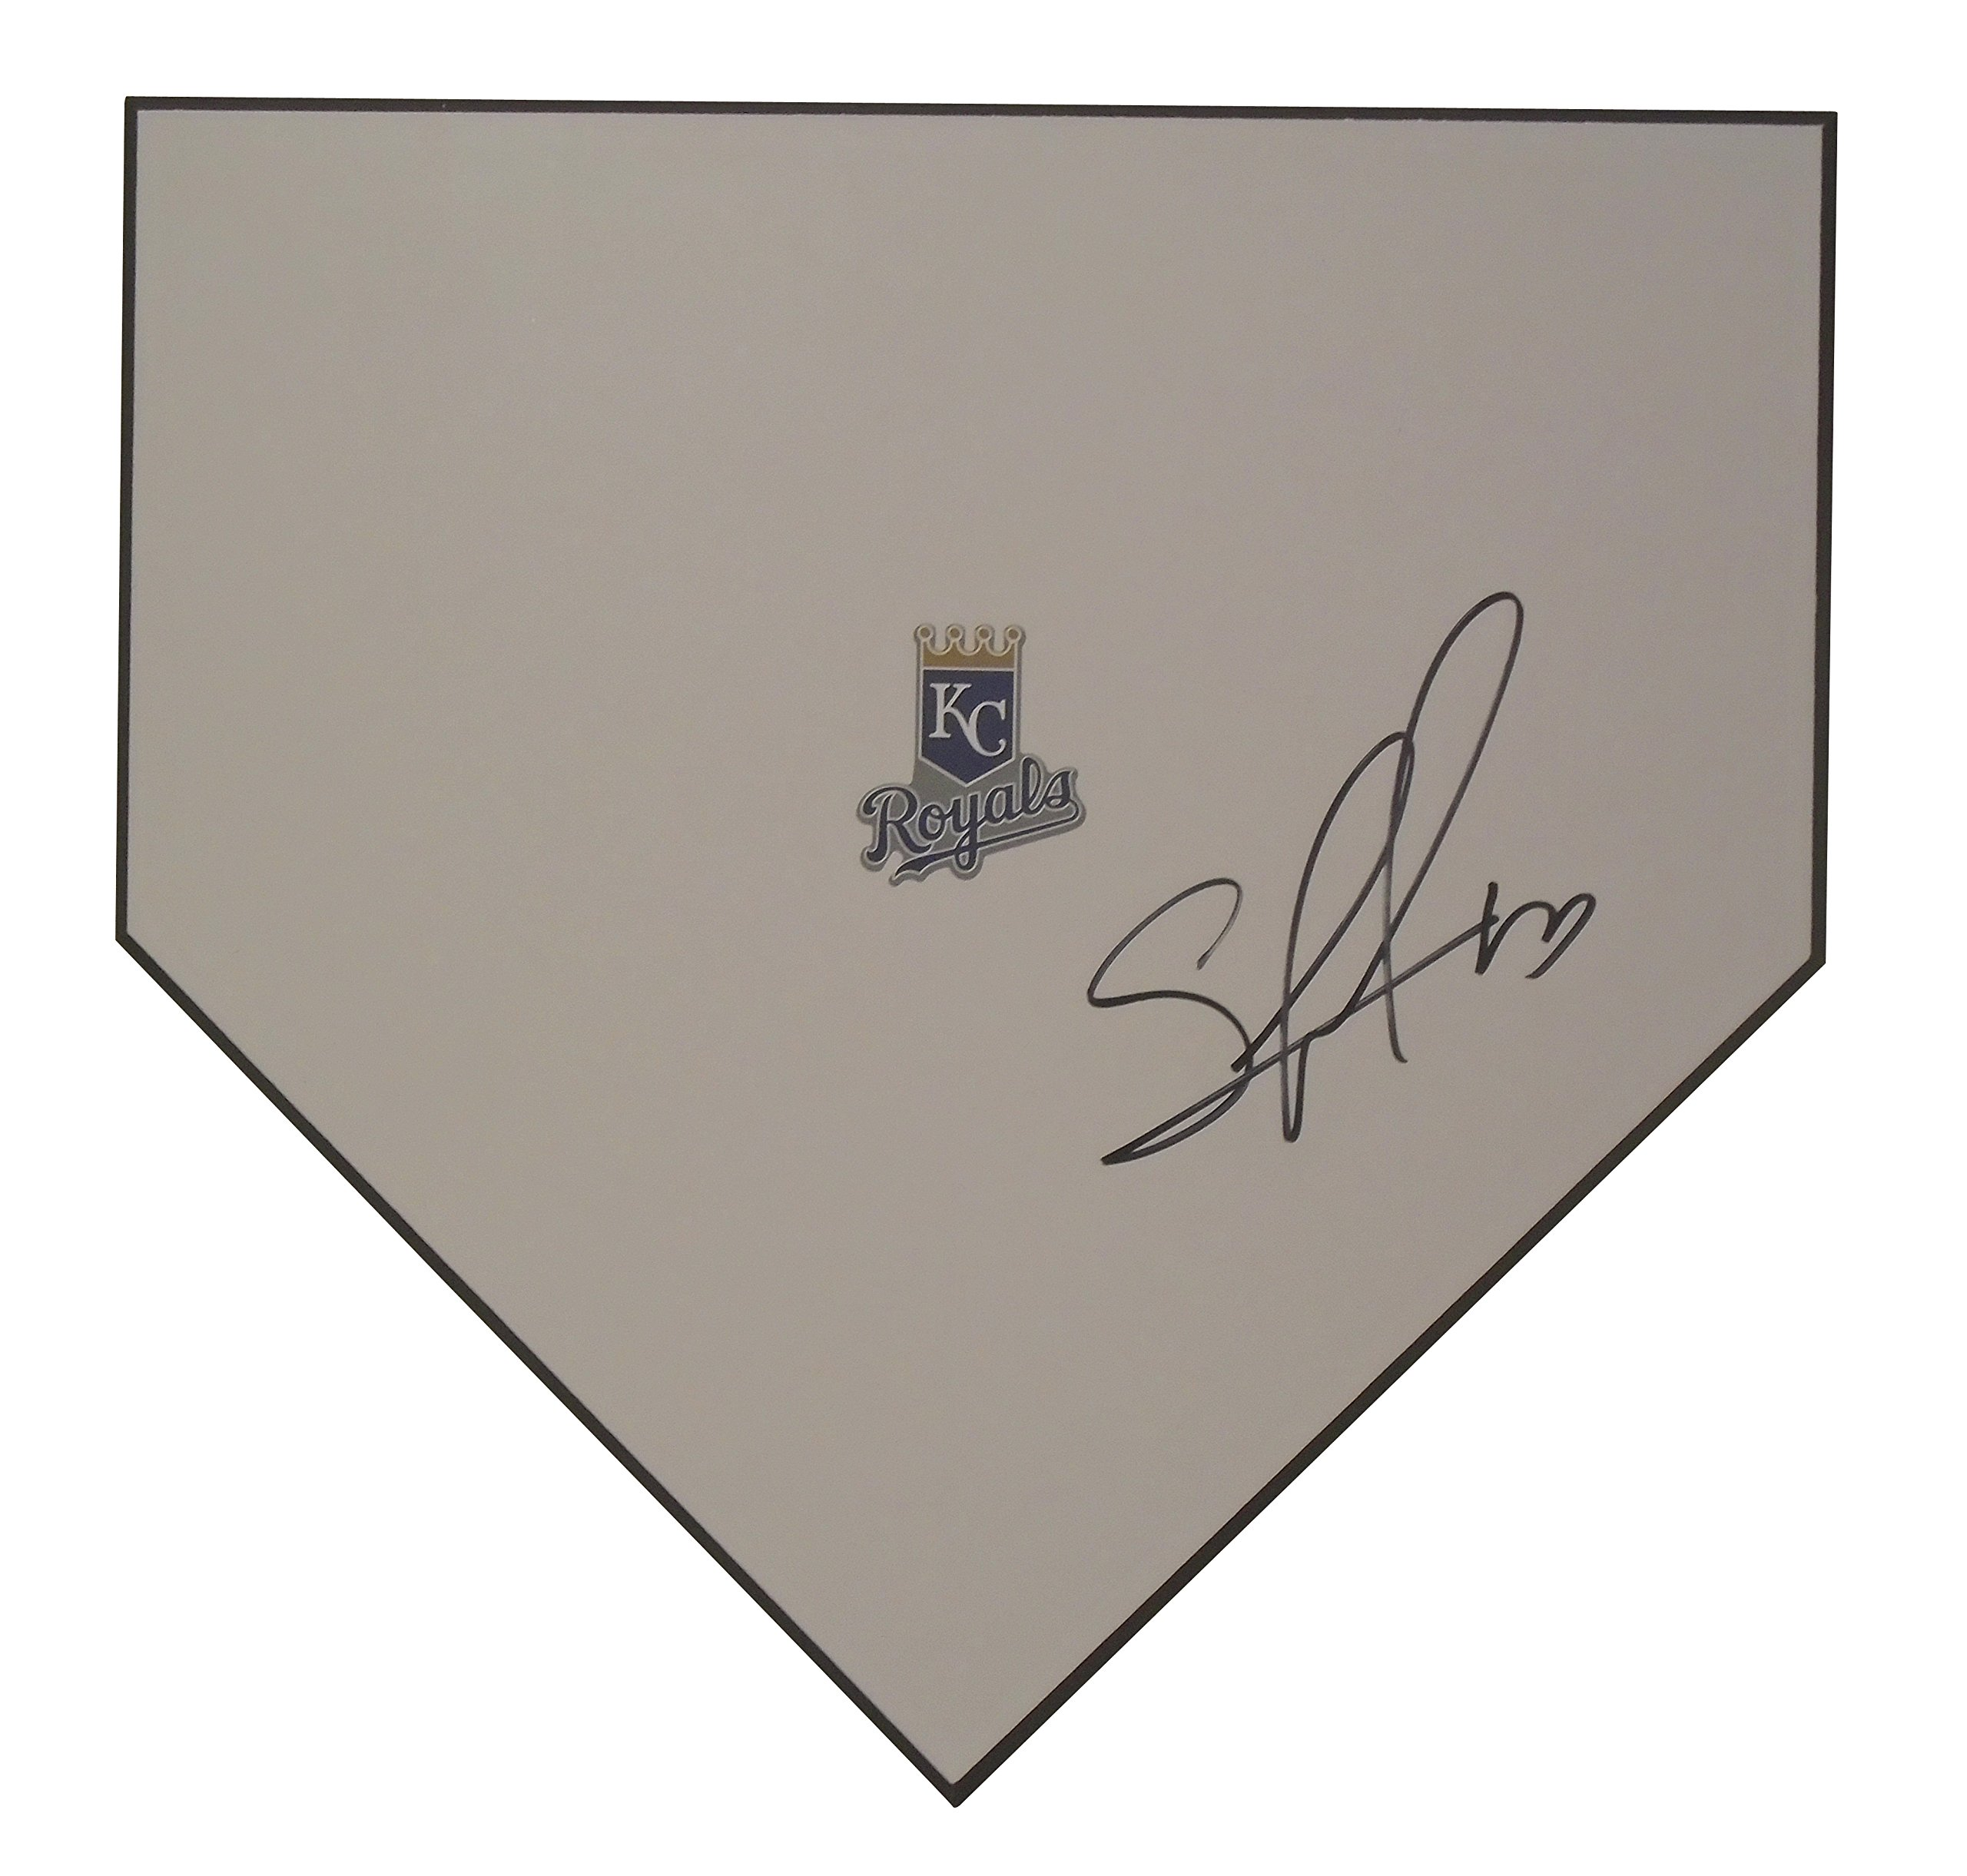 Kansas City Royals Salvador Perez Autographed Hand Signed KC Royals Logo Baseball Home Plate Base with Proof Photo of Signing and COA